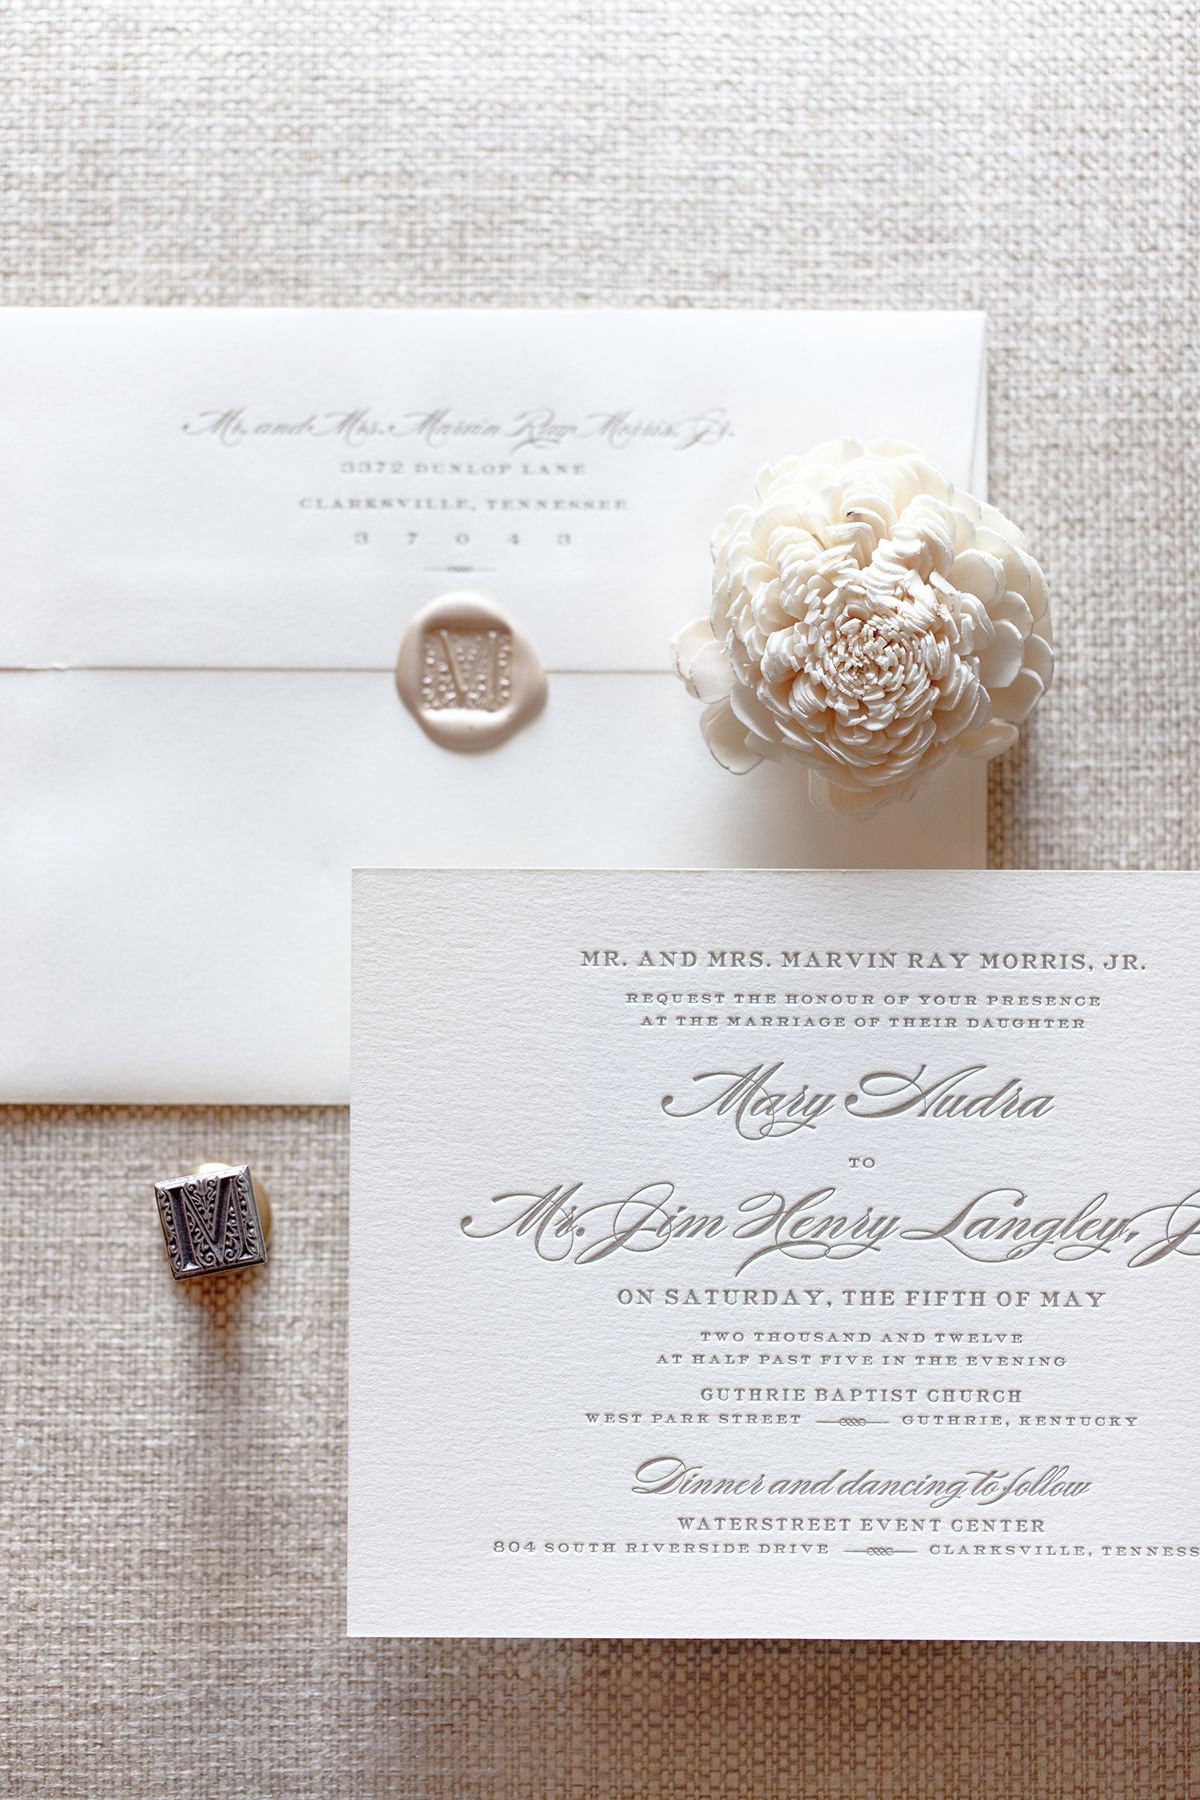 Letterpress Wedding Invitation | Letterpress Wedding Stationary ...